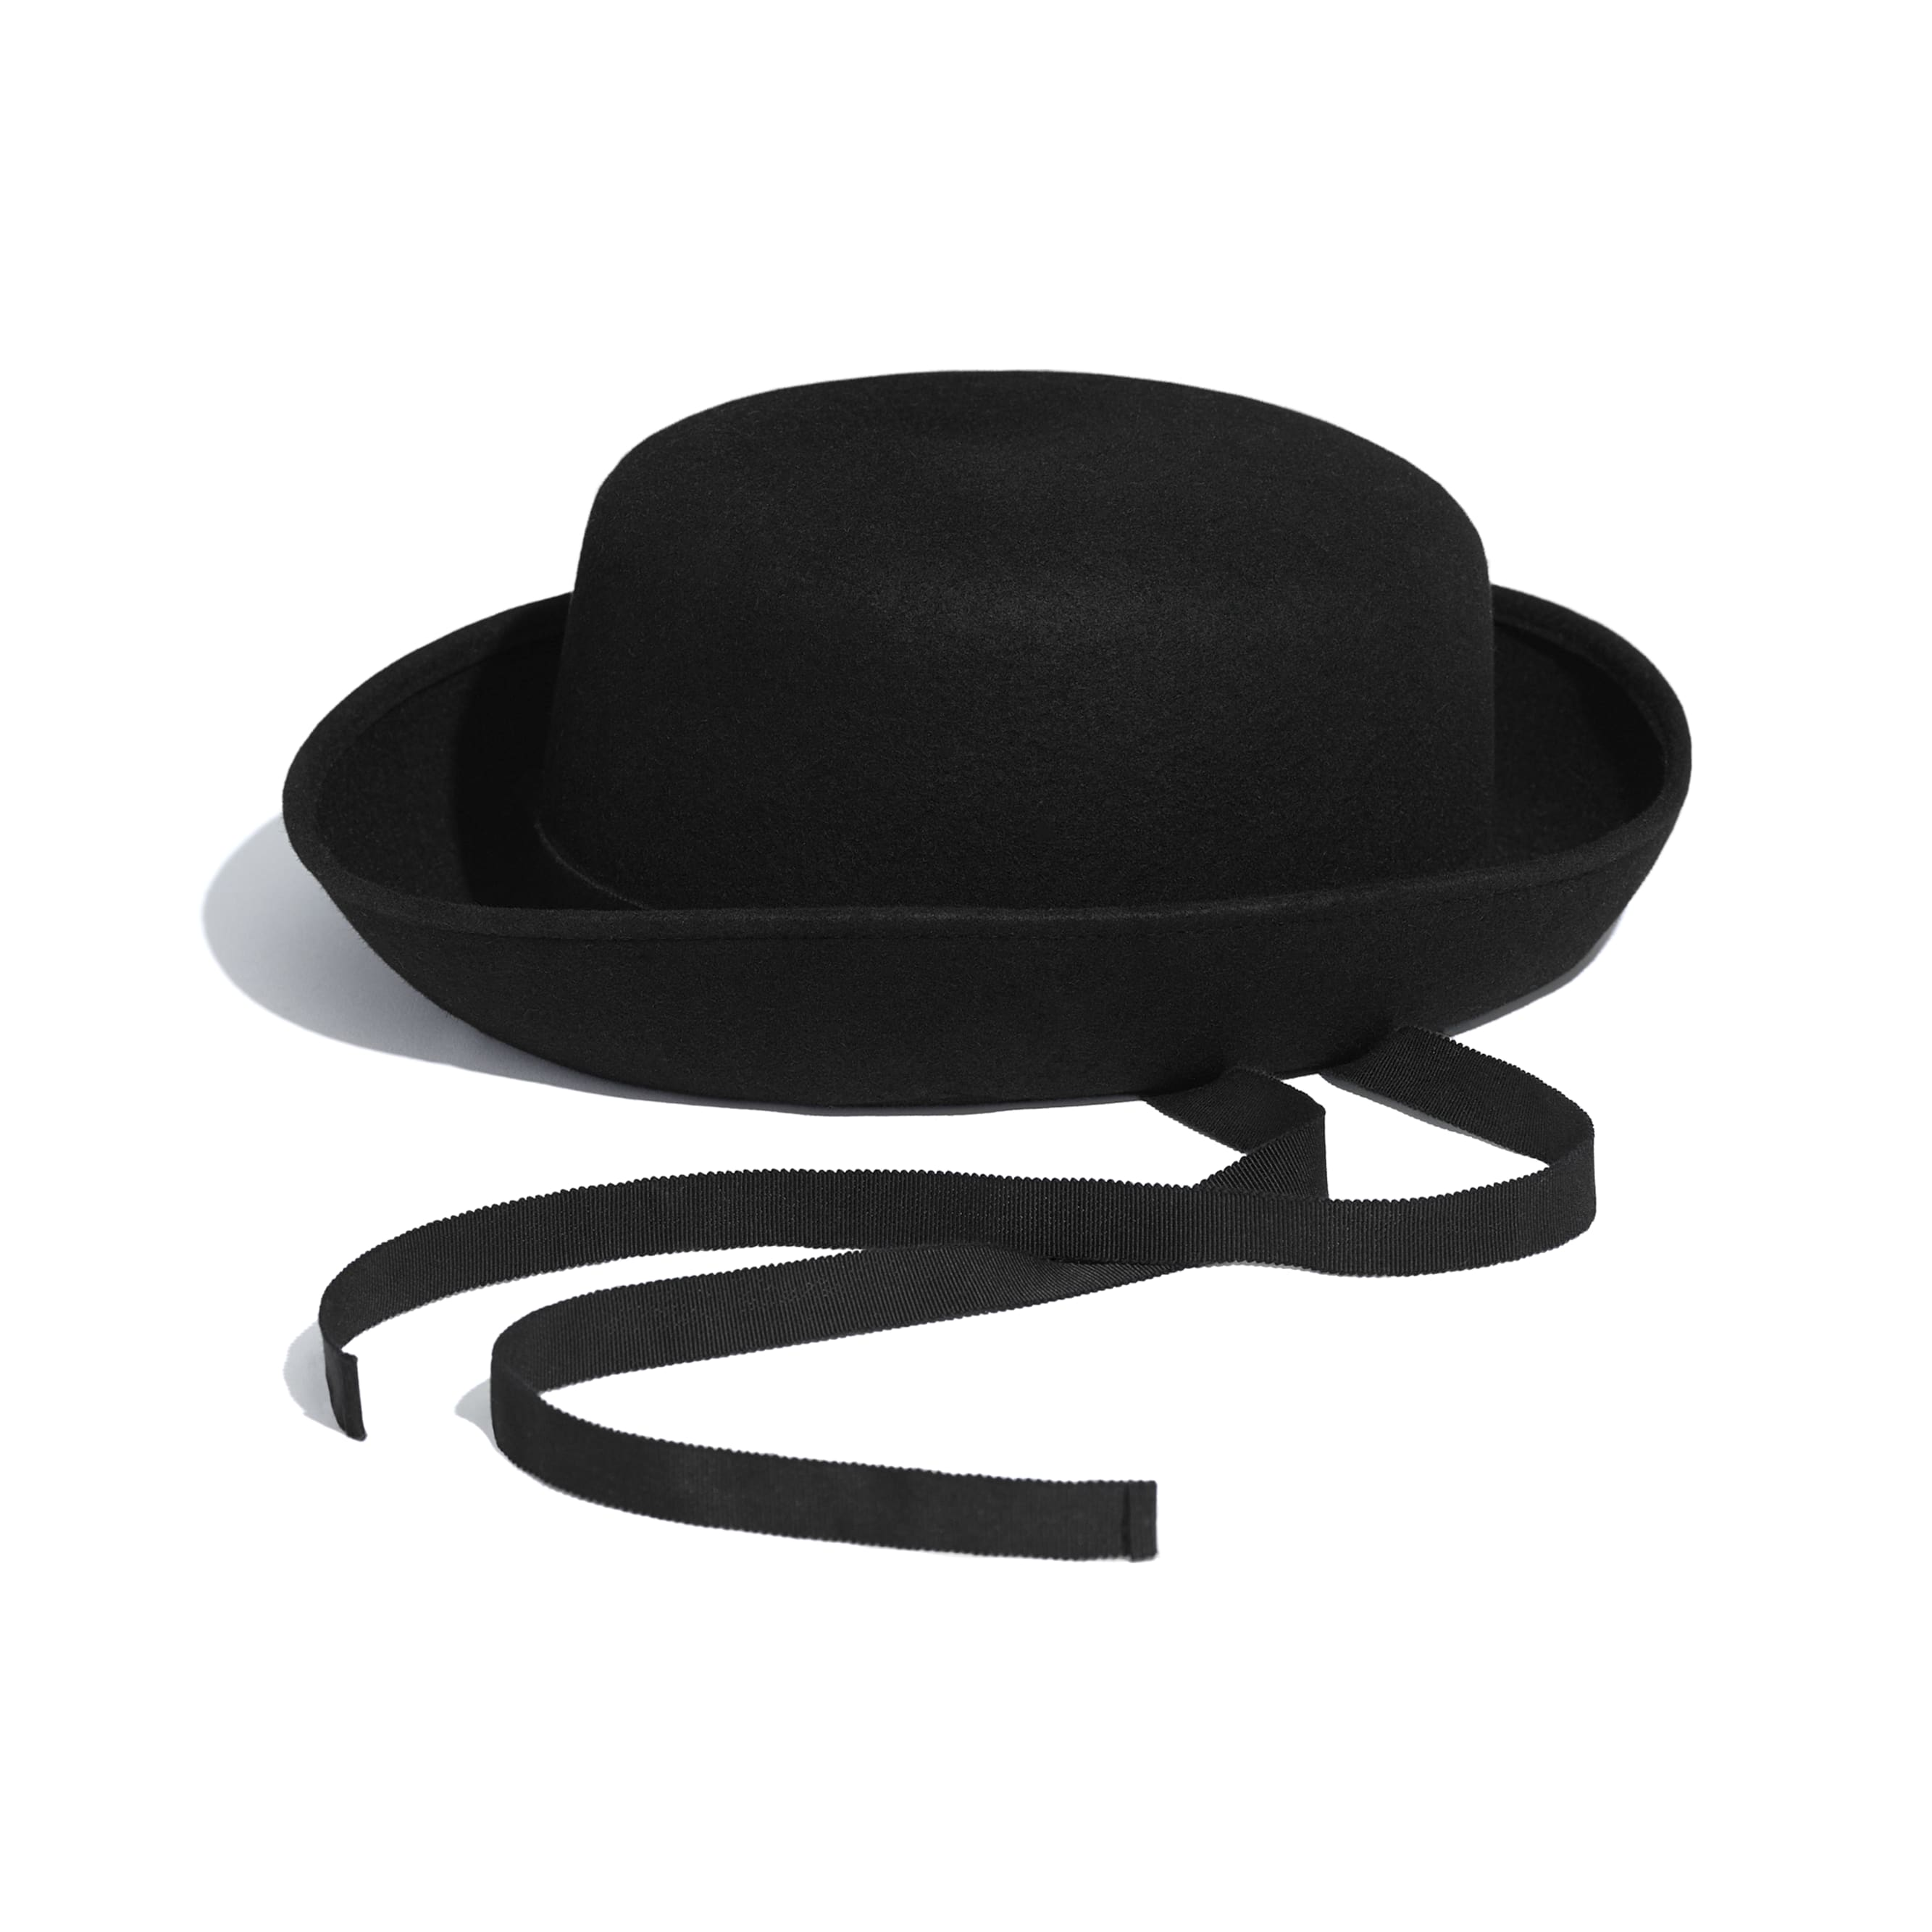 Hat - Black - Felt & Grosgrain - CHANEL - Default view - see standard sized version